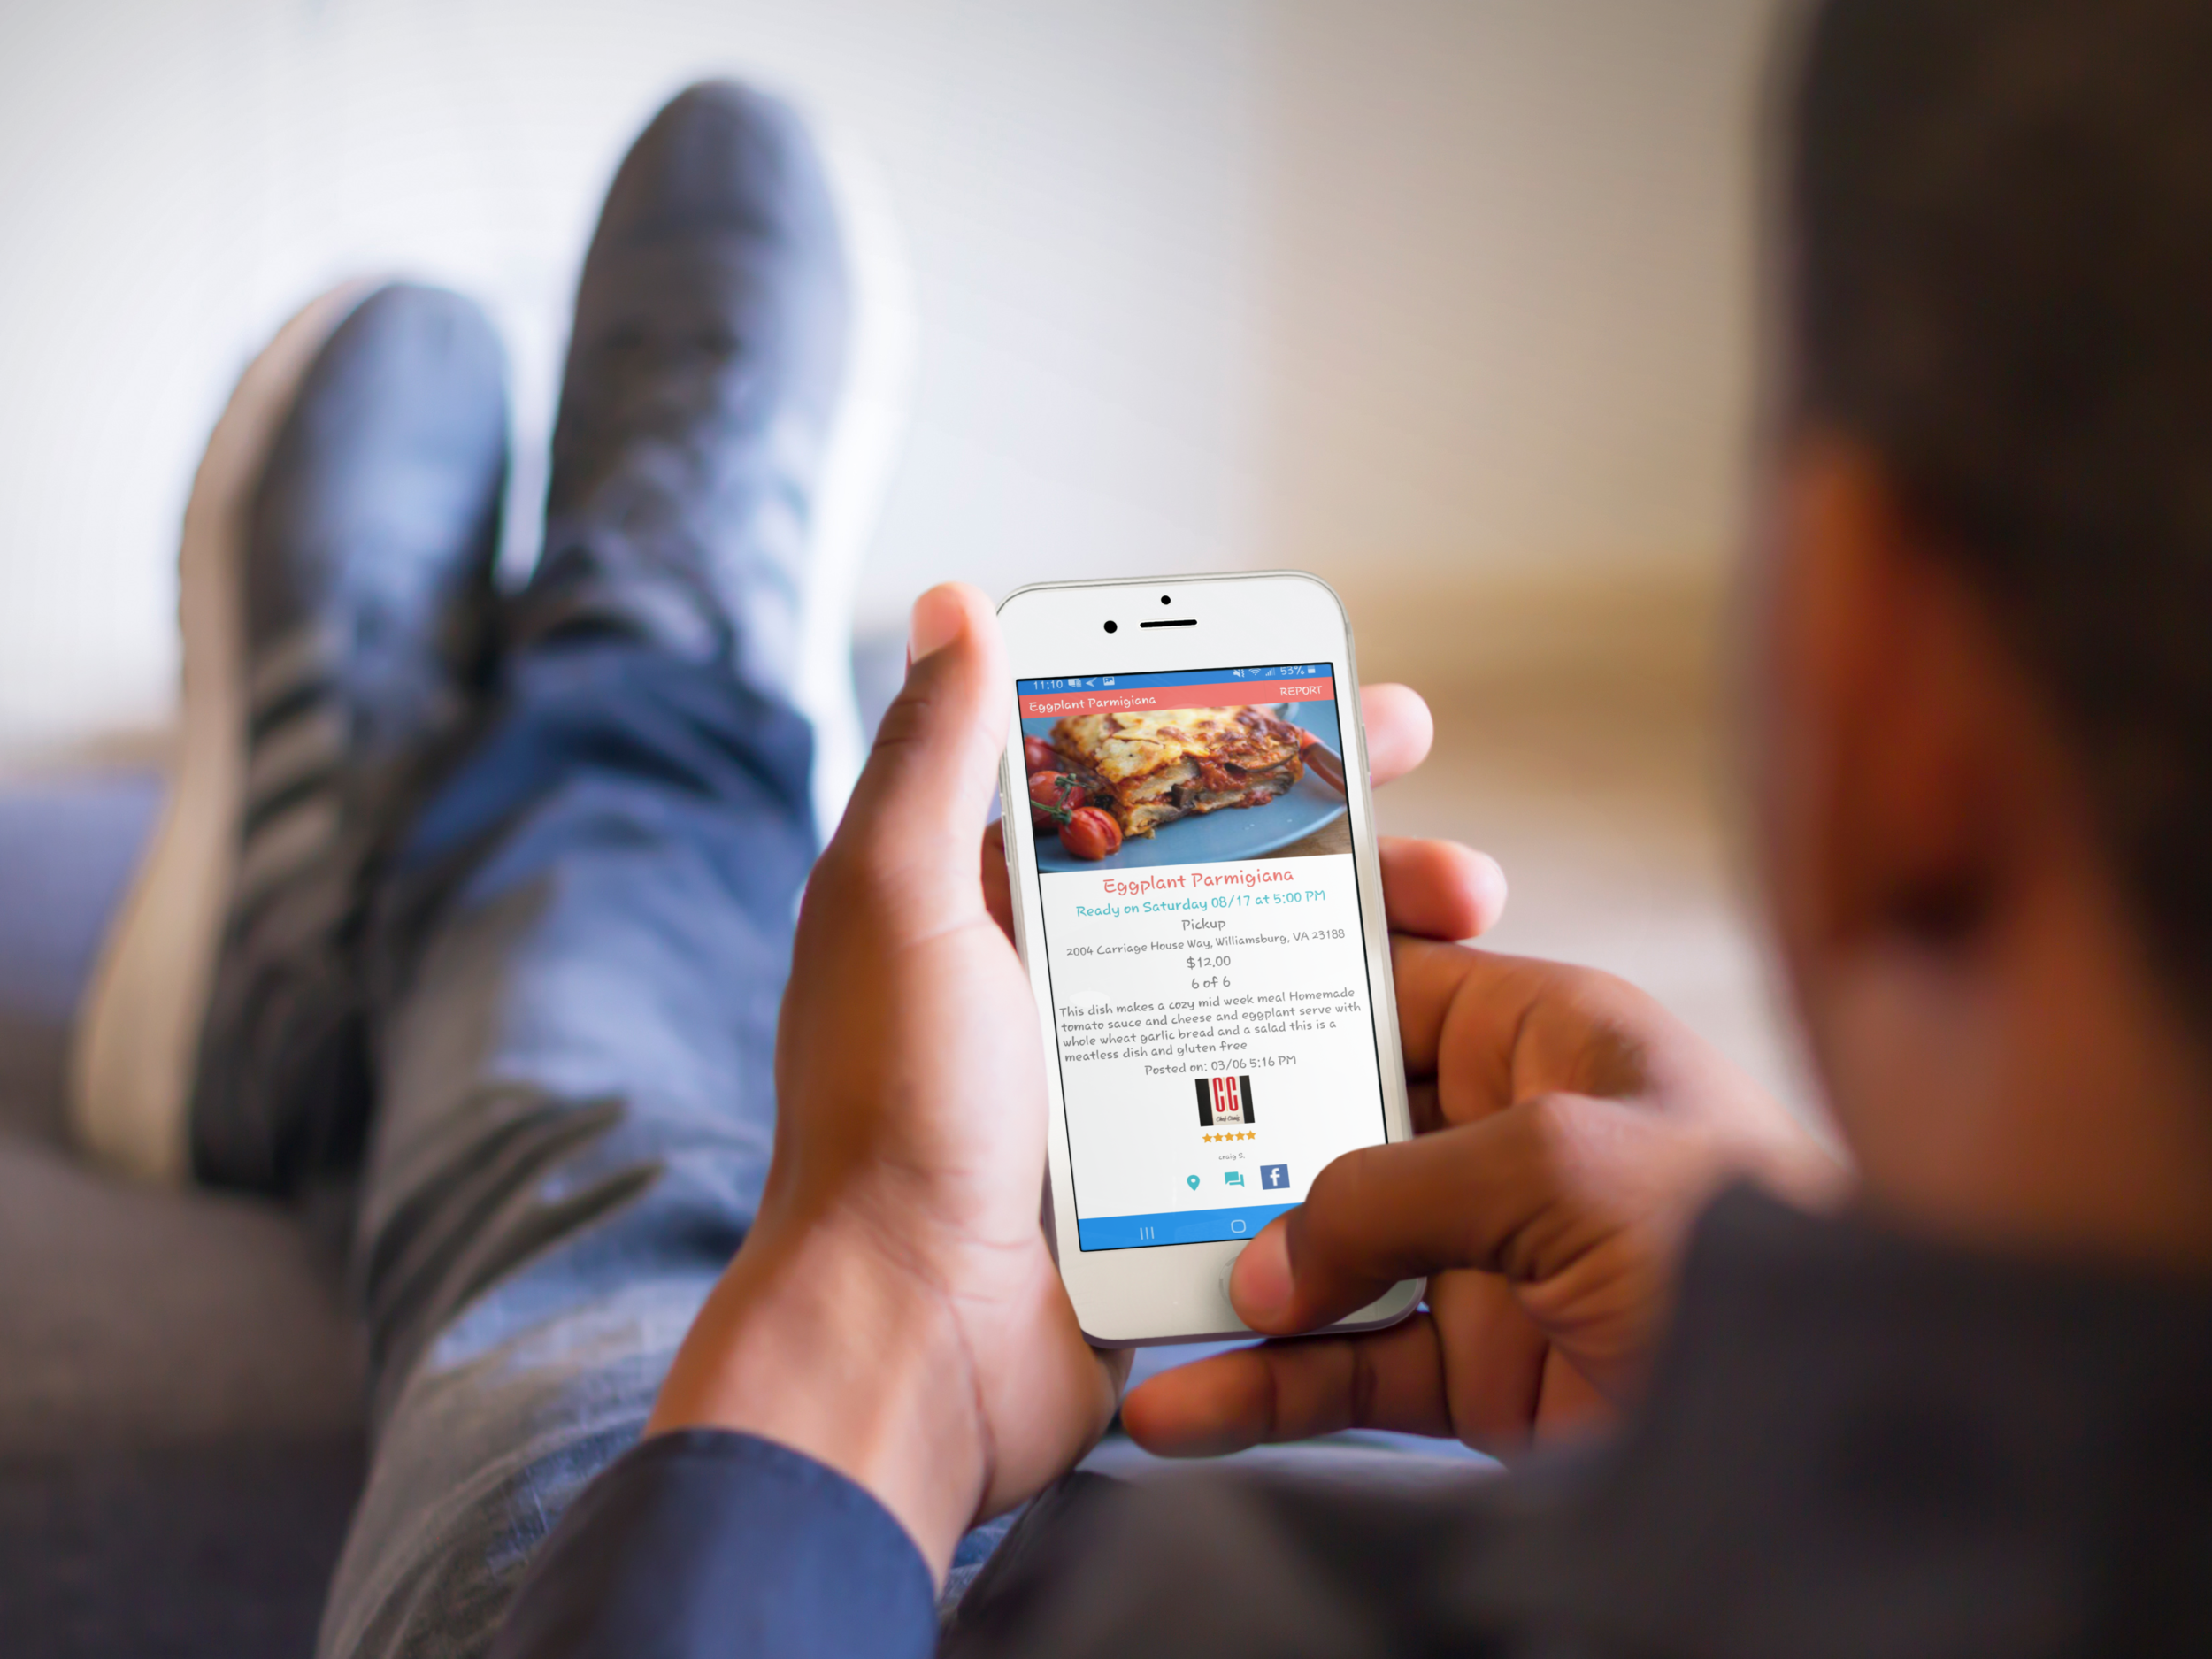 mockup-of-man-relaxing-with-his-feet-up-while-using-a-white-iphone-6 (1).png